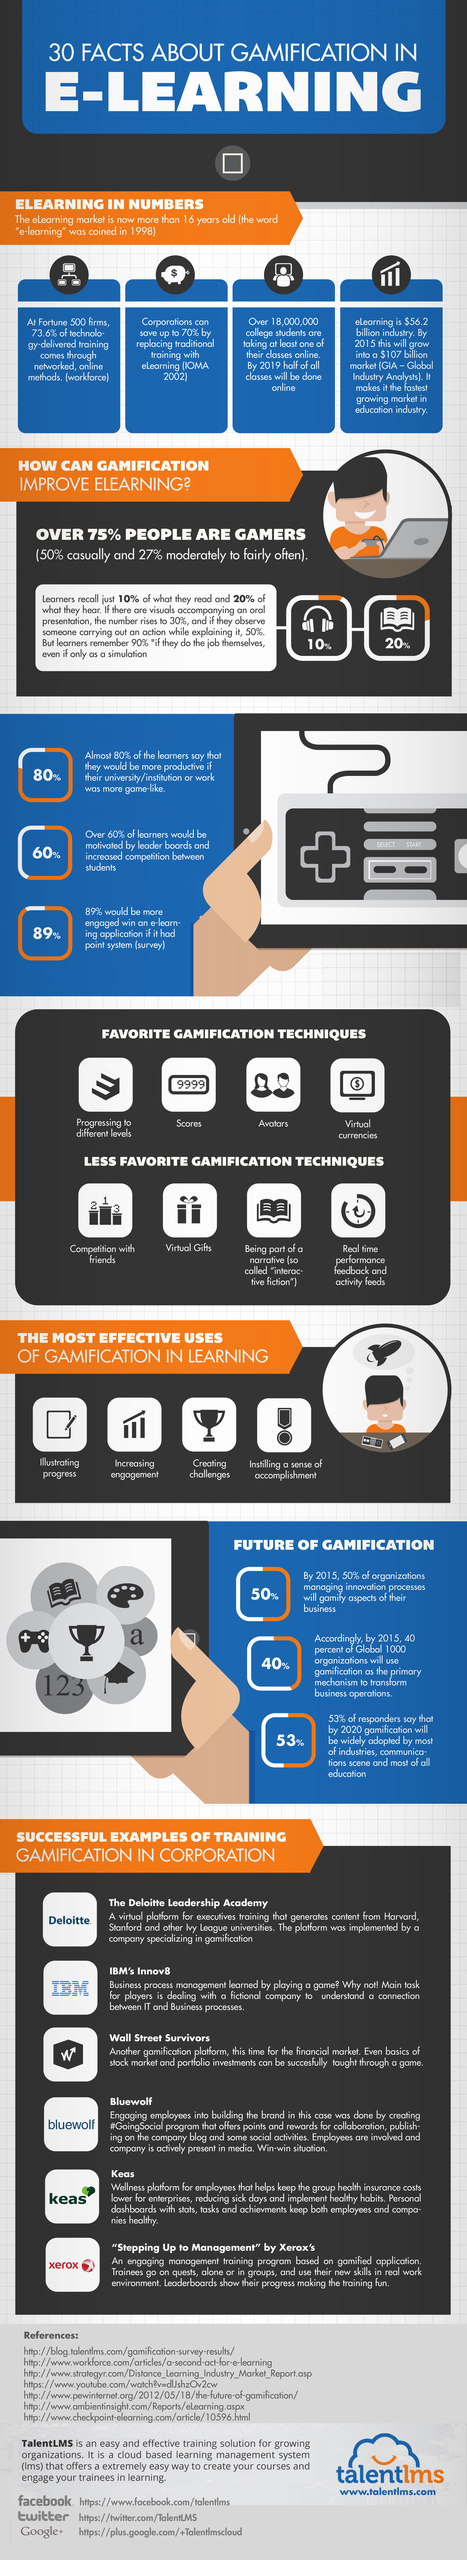 30 Facts About Gamification in eLearning Infographic | eLearning & Distance Education & Open Learning | Scoop.it